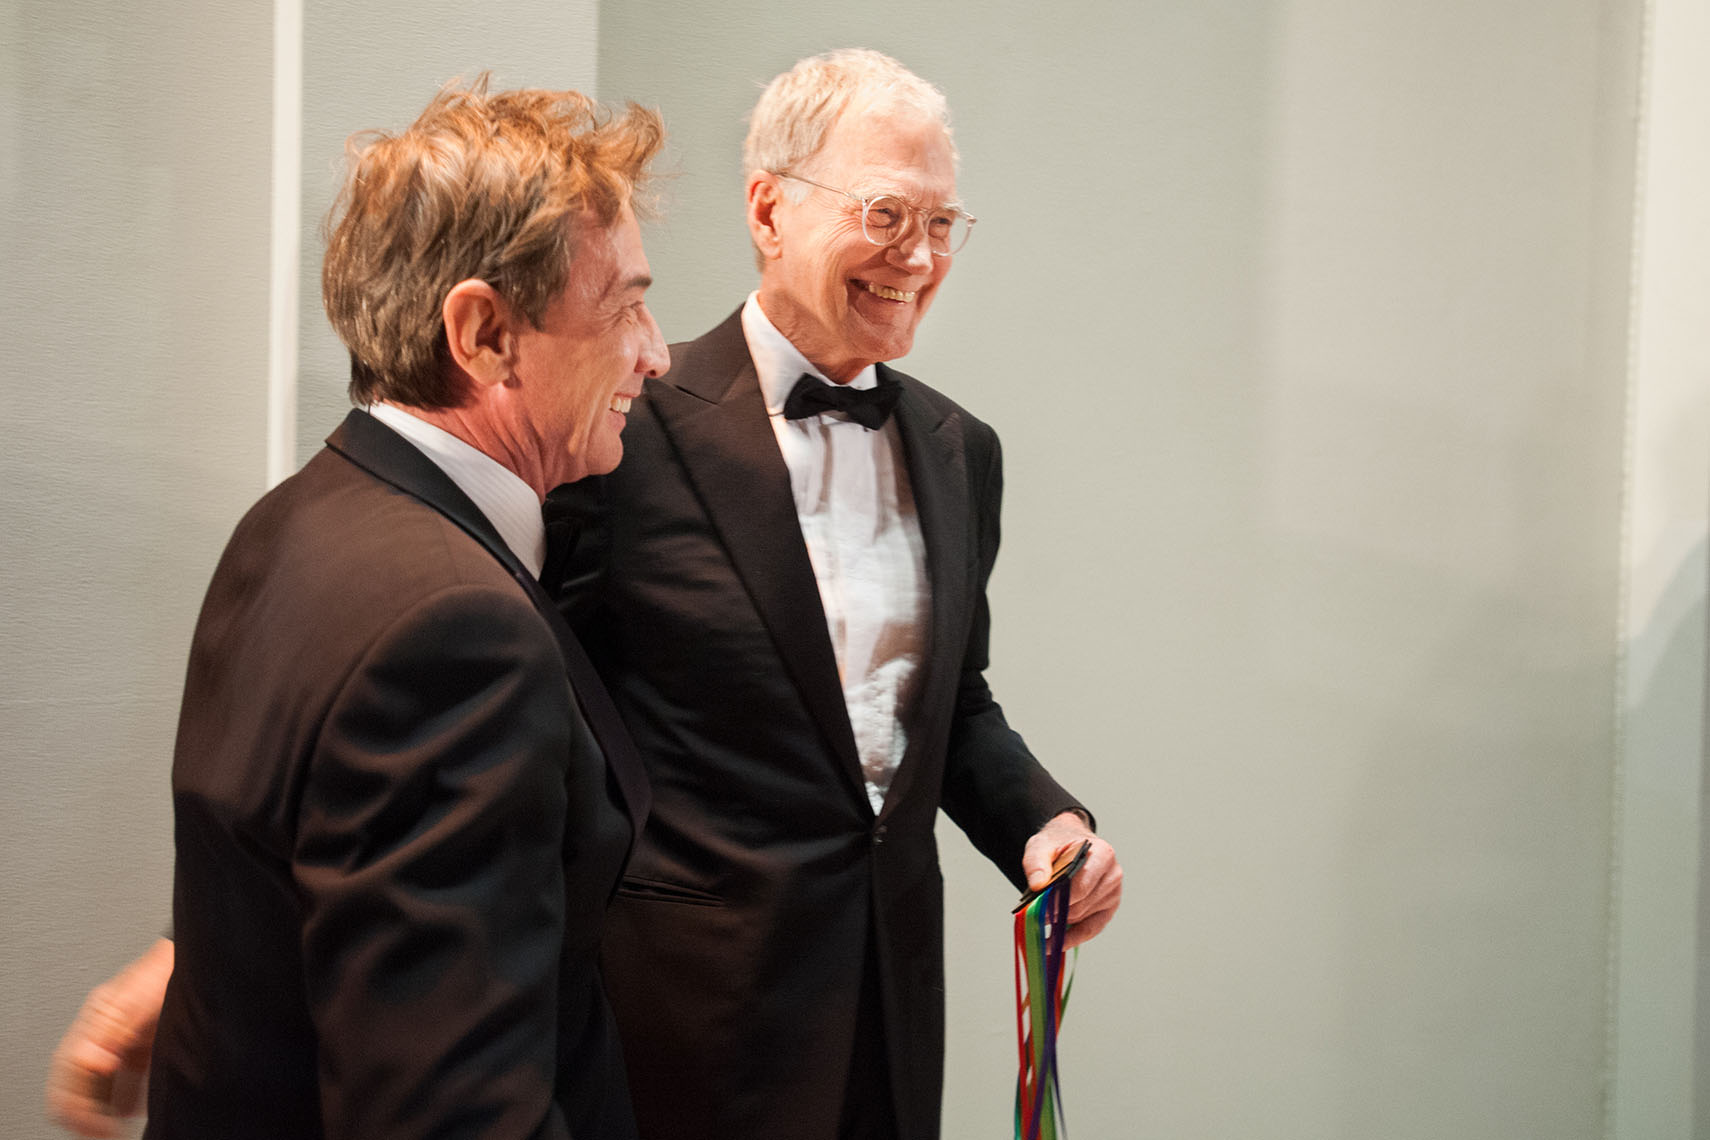 Martin Short and David Letterman | Washington Photographer Aaron Clamage